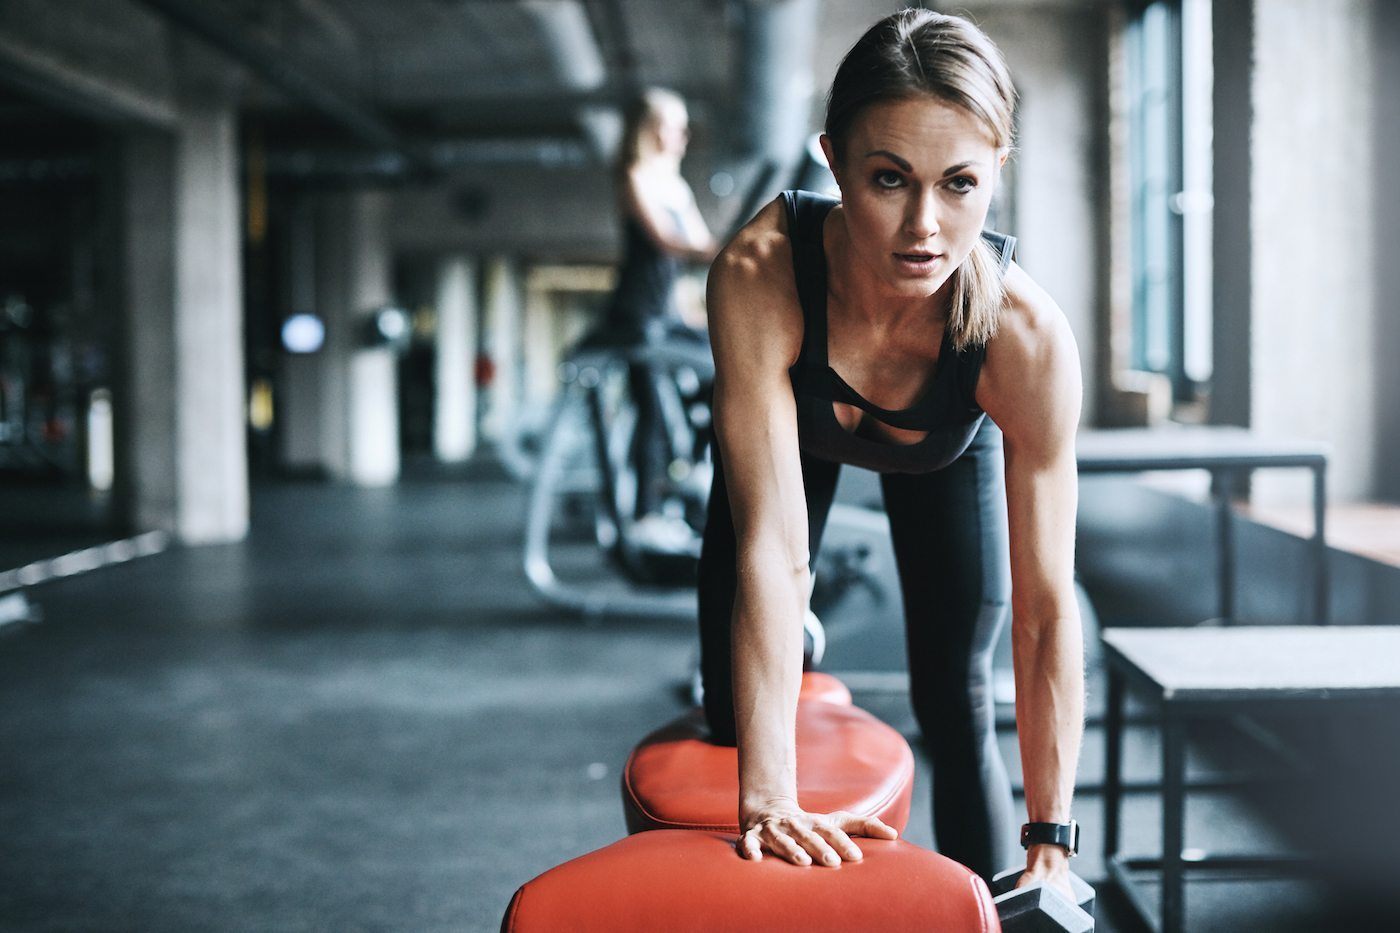 German volume training is the most intense (yet old-school) method for getting stronger